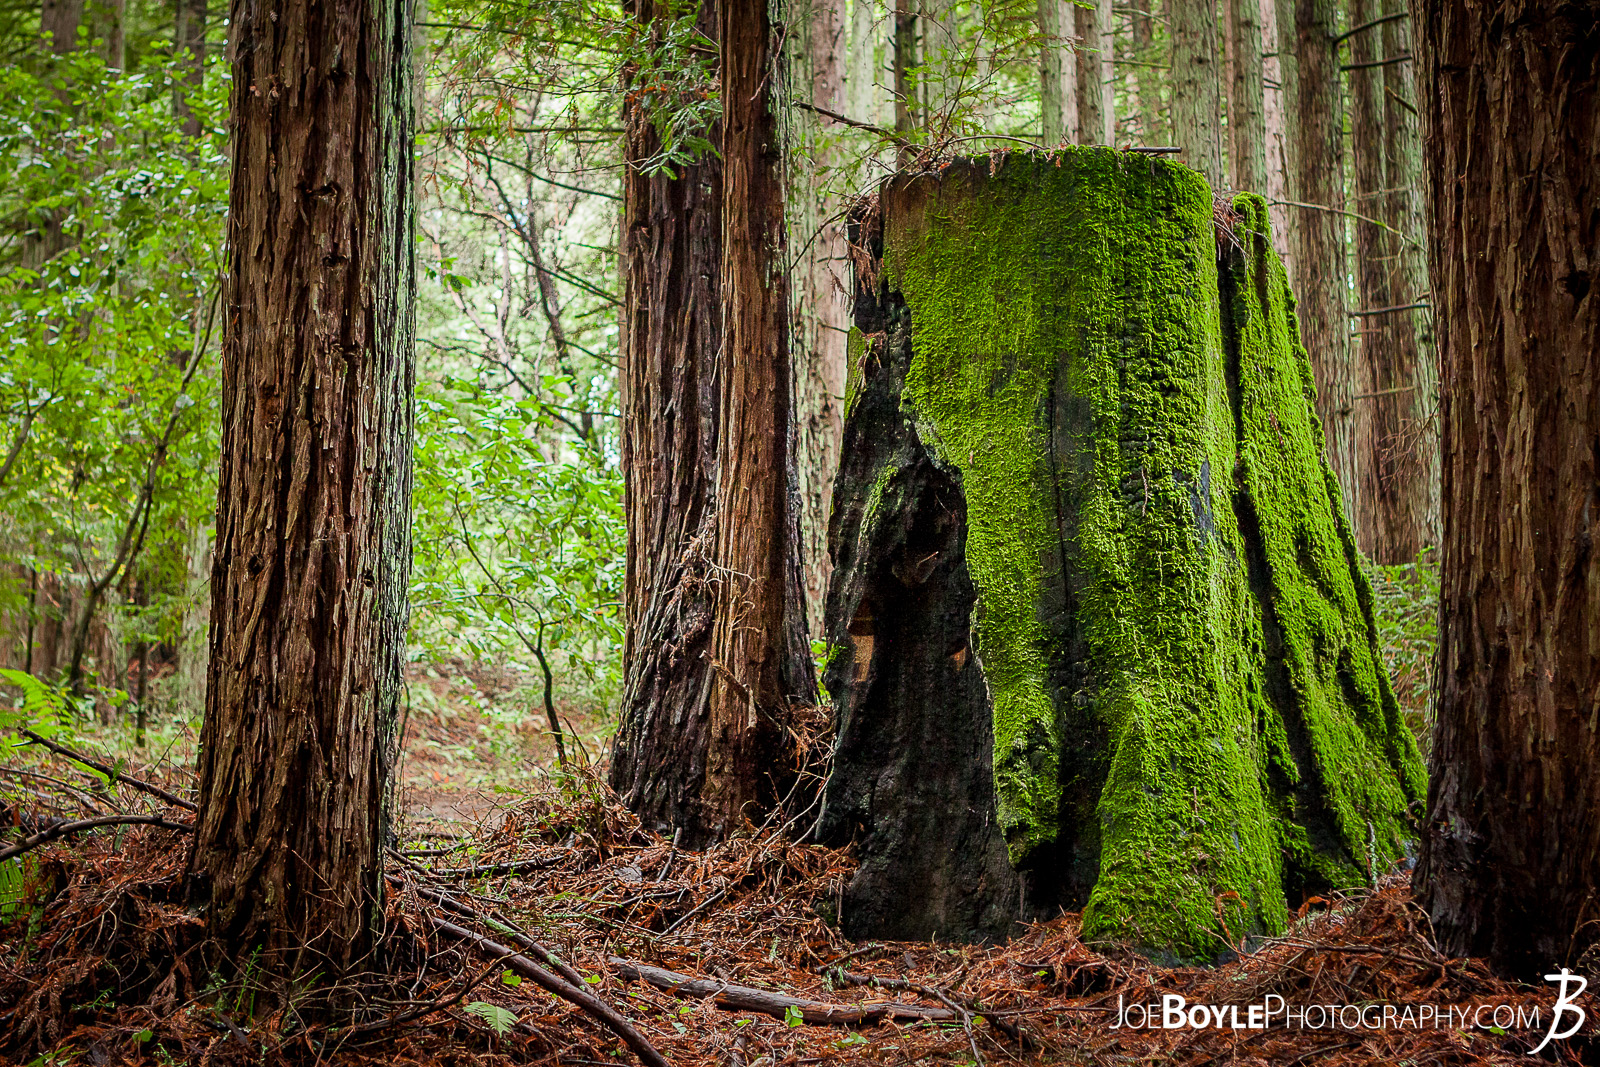 When I was traveling to California I made a stop at University of California, Santa Cruz. The campus amazed me as it was tucked into a beautiful forest on the side of small mountain. It was very cool! Here is an image along one of the paths you would travel on to class. neat looking, old tree stump with vibrant moss growing on it along the trail!